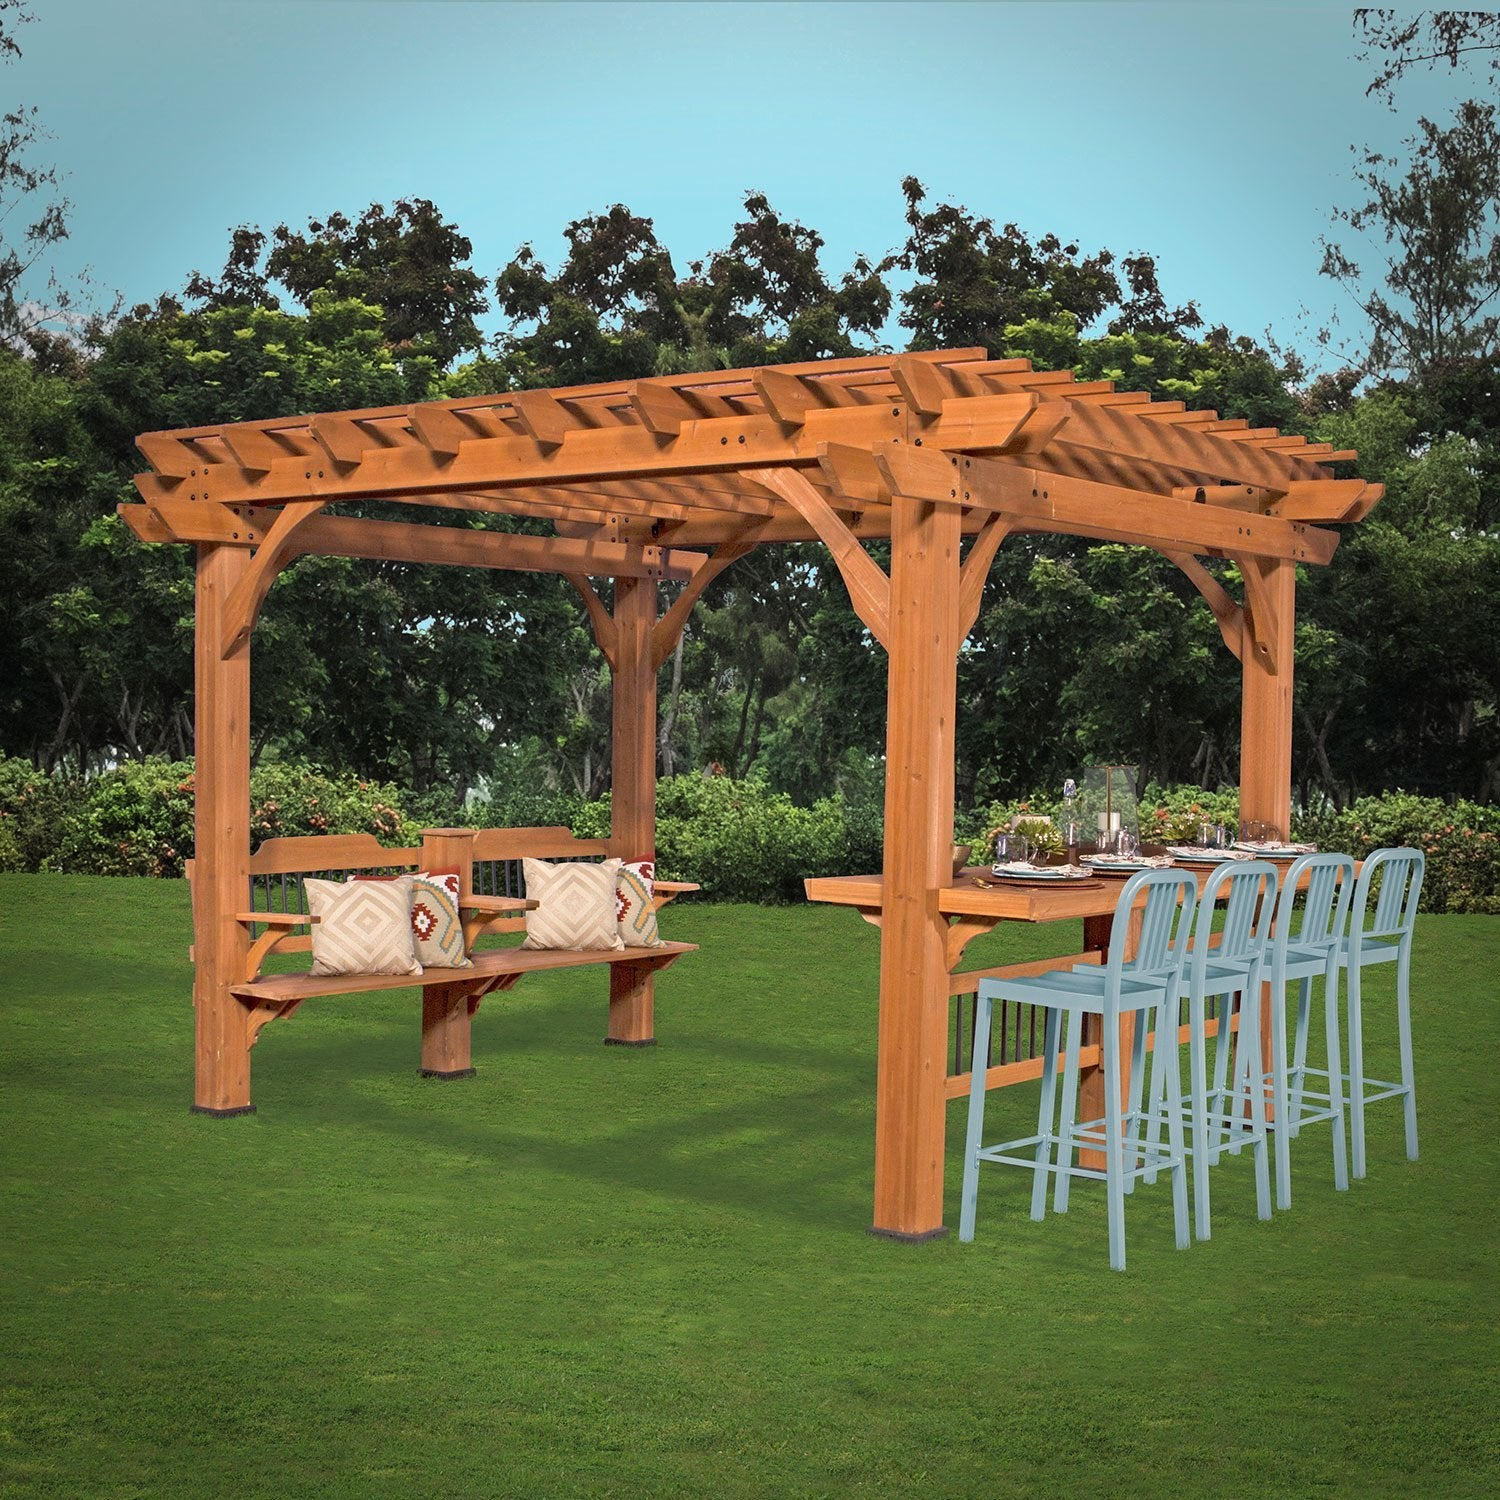 oasis pergola 12 x 10 pergola patio backyard discovery. Black Bedroom Furniture Sets. Home Design Ideas